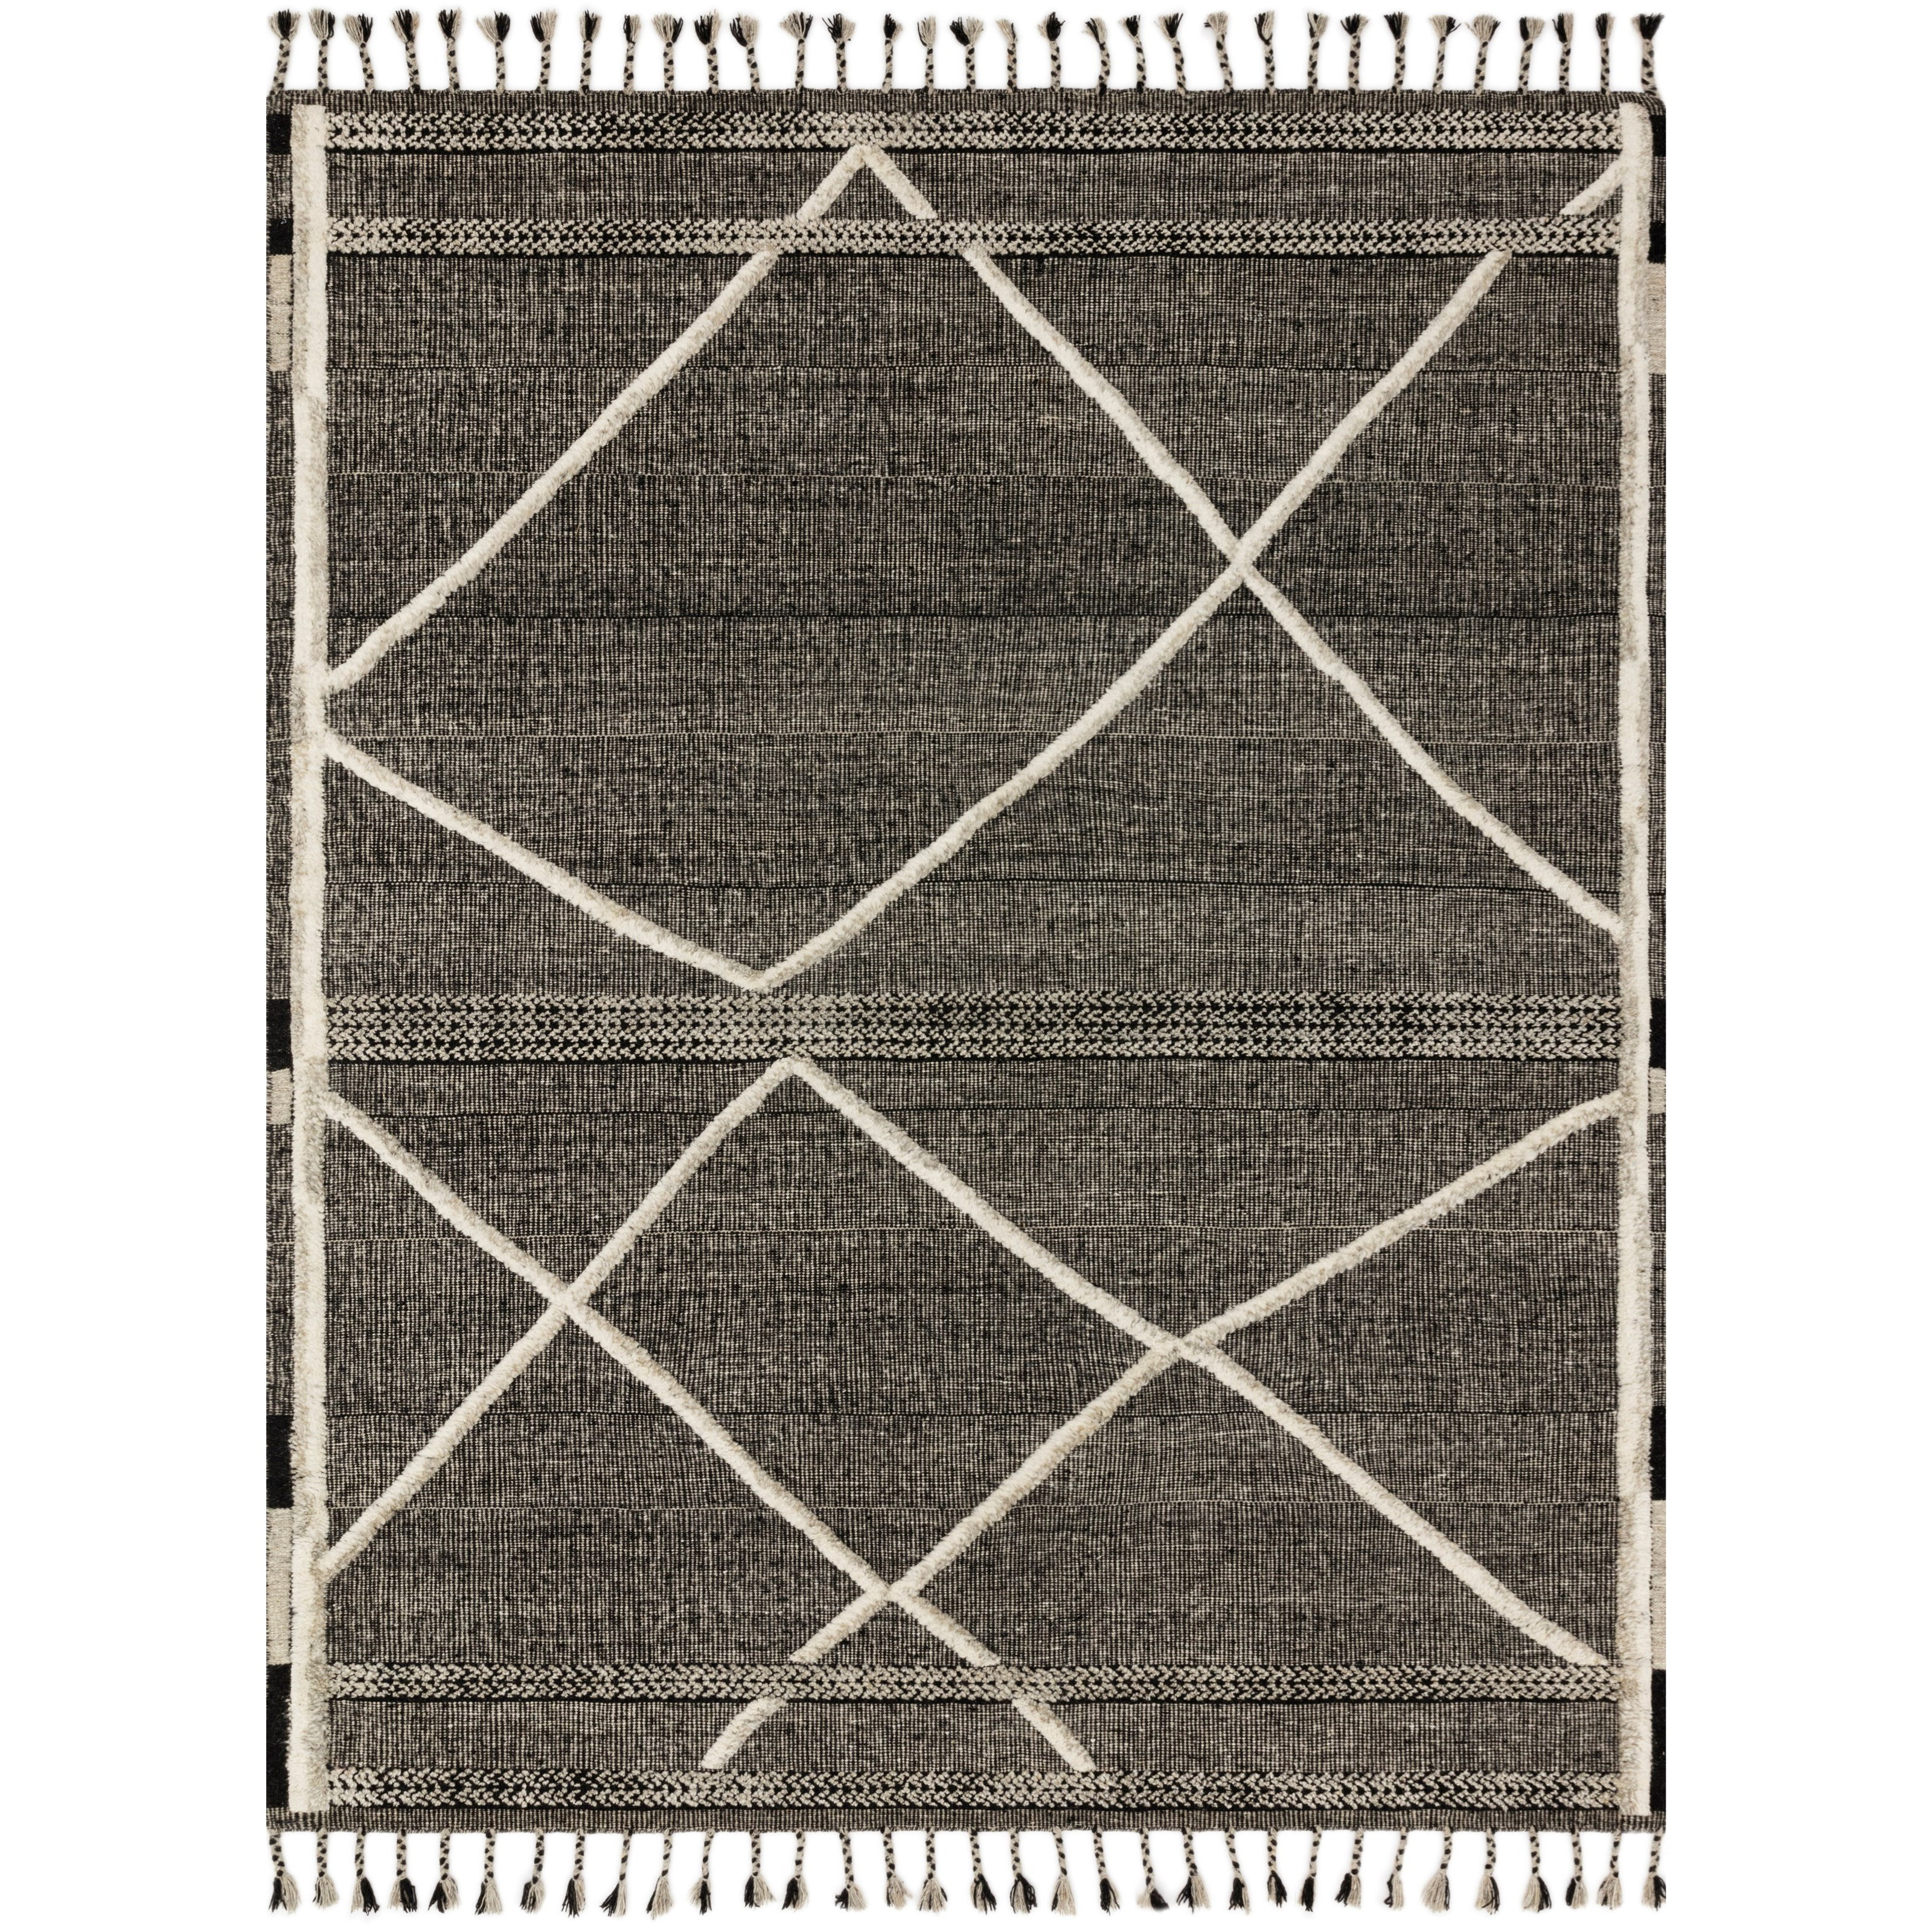 """Iman 4'0"""" x 6'0"""" Beige / Charcoal Rug by Loloi Rugs at Virginia Furniture Market"""